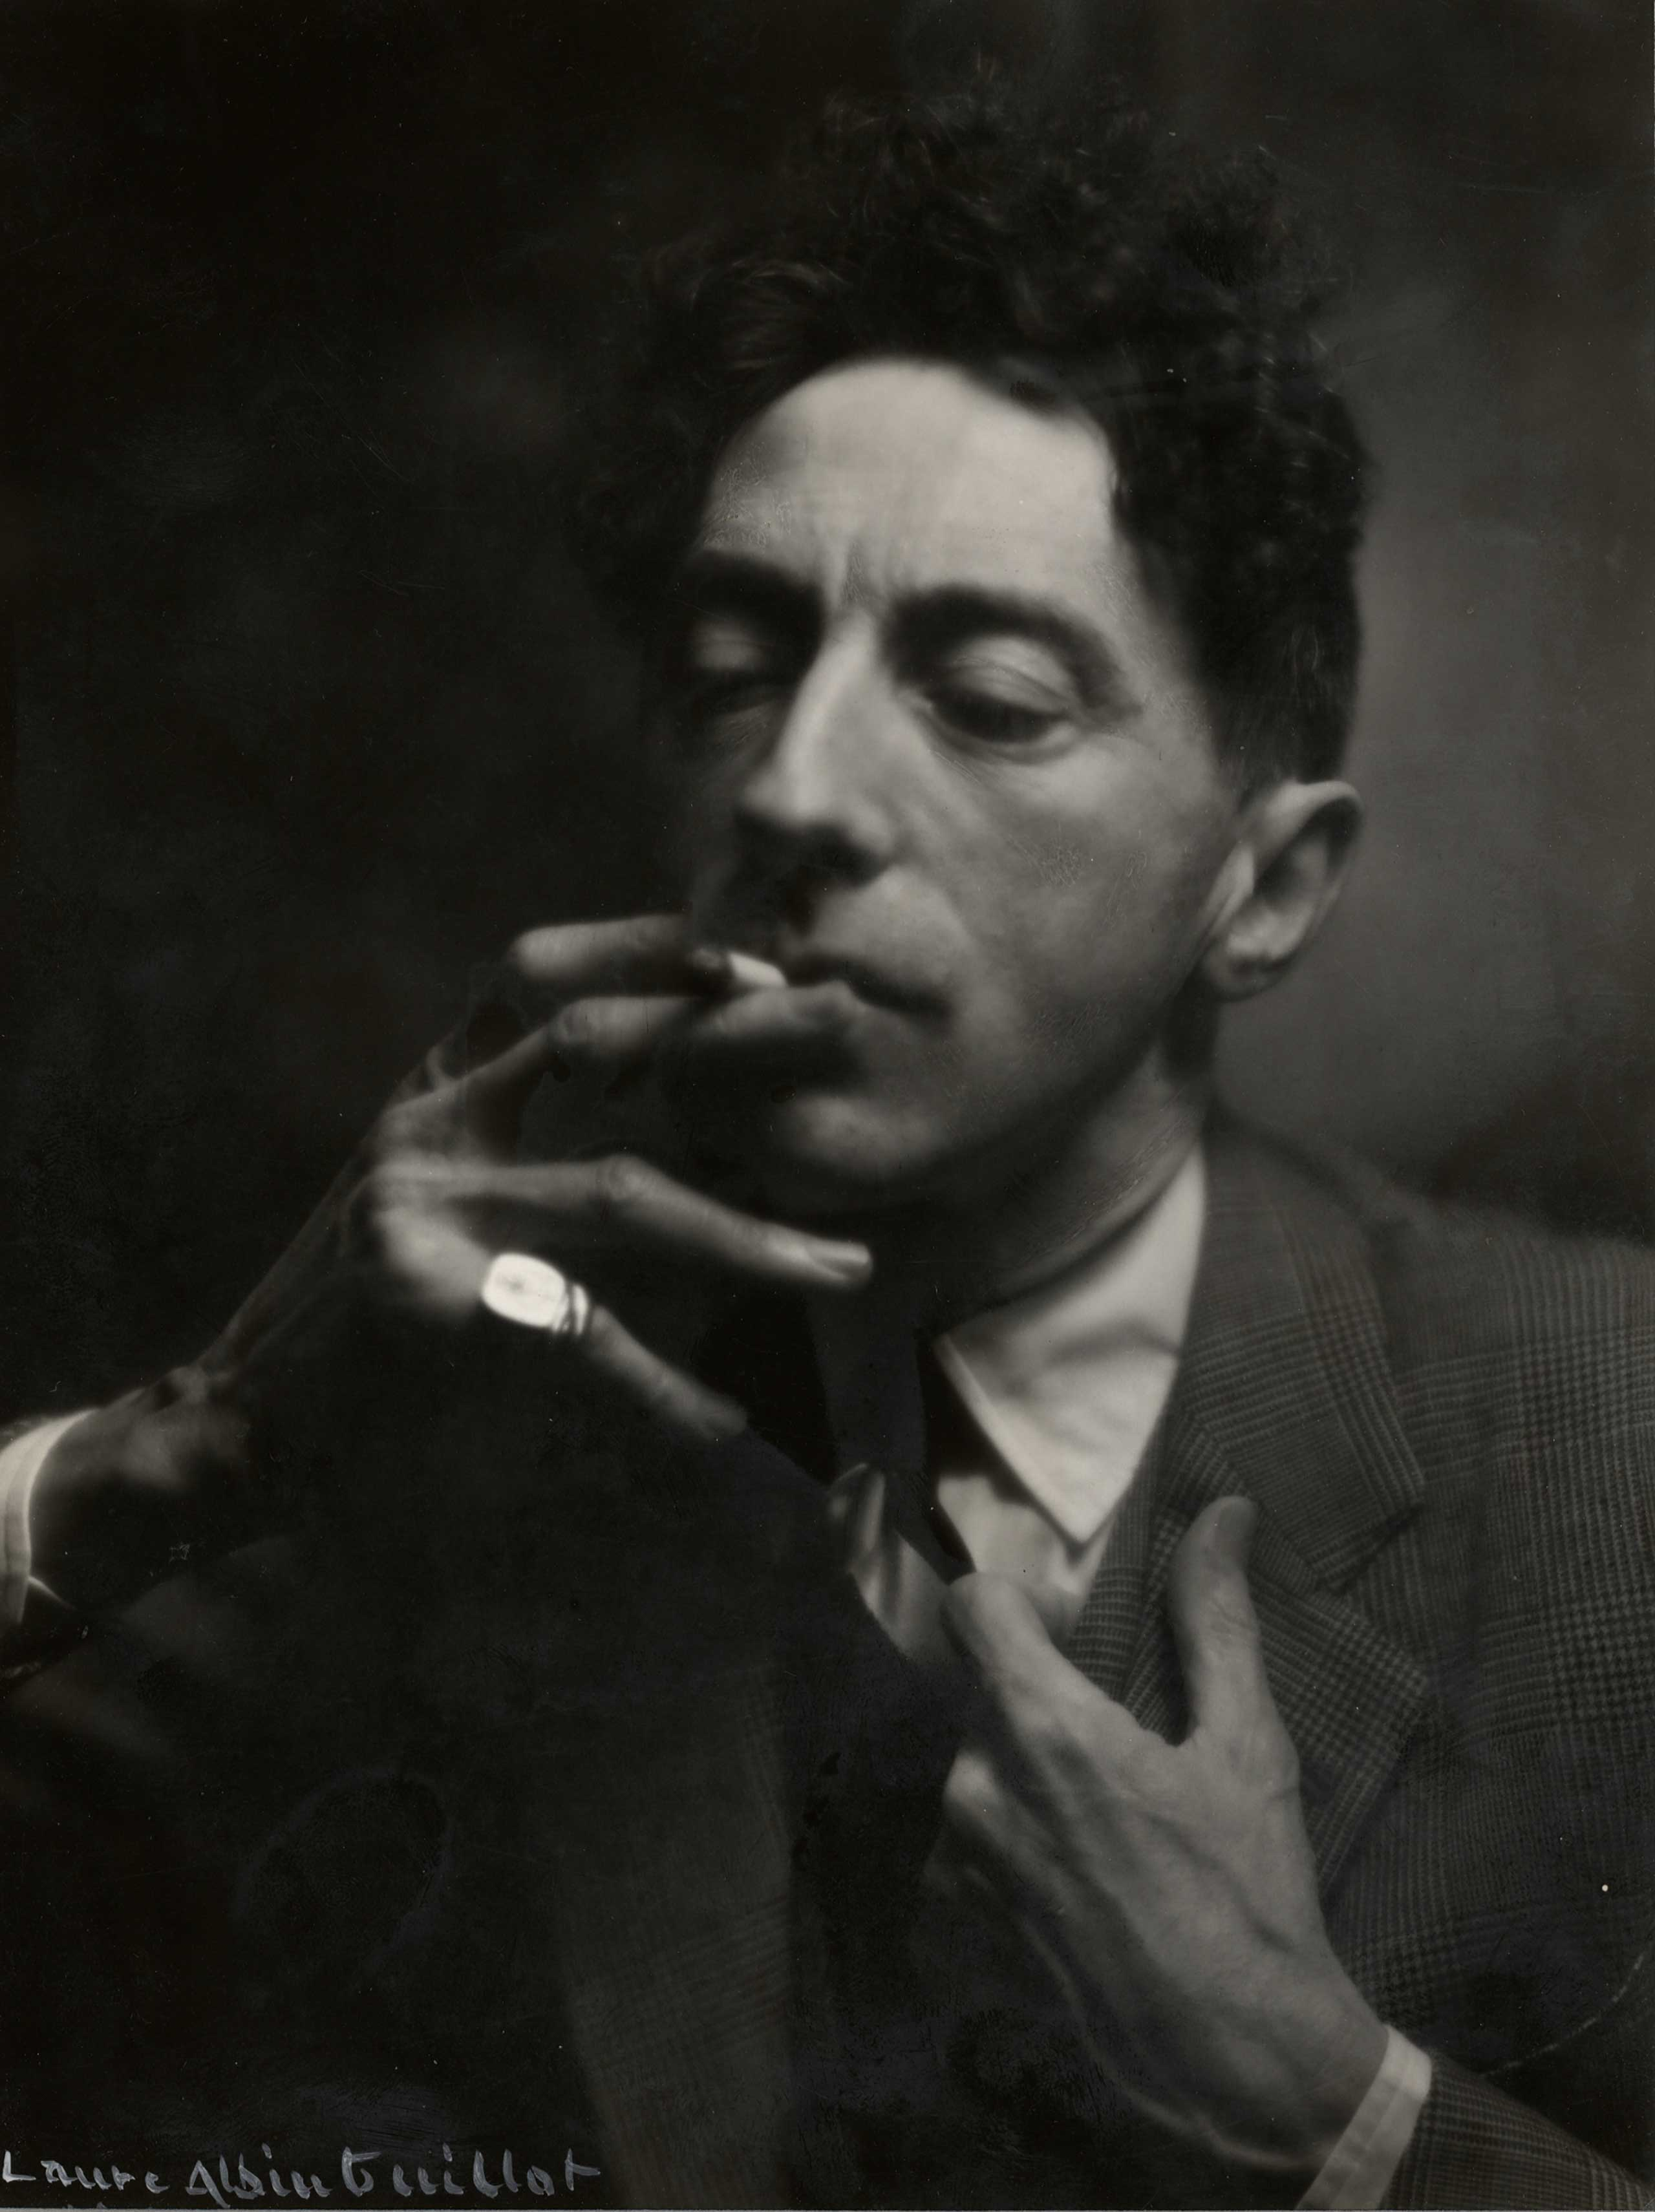 Live and Life Will Give You Pictures: Masterworks of French Photography, 1890 -1950, The Barnes Foundation, Pa.: Oct. 8 - Jan. 9                                                              (Caption: Jean Cocteau, 1934)